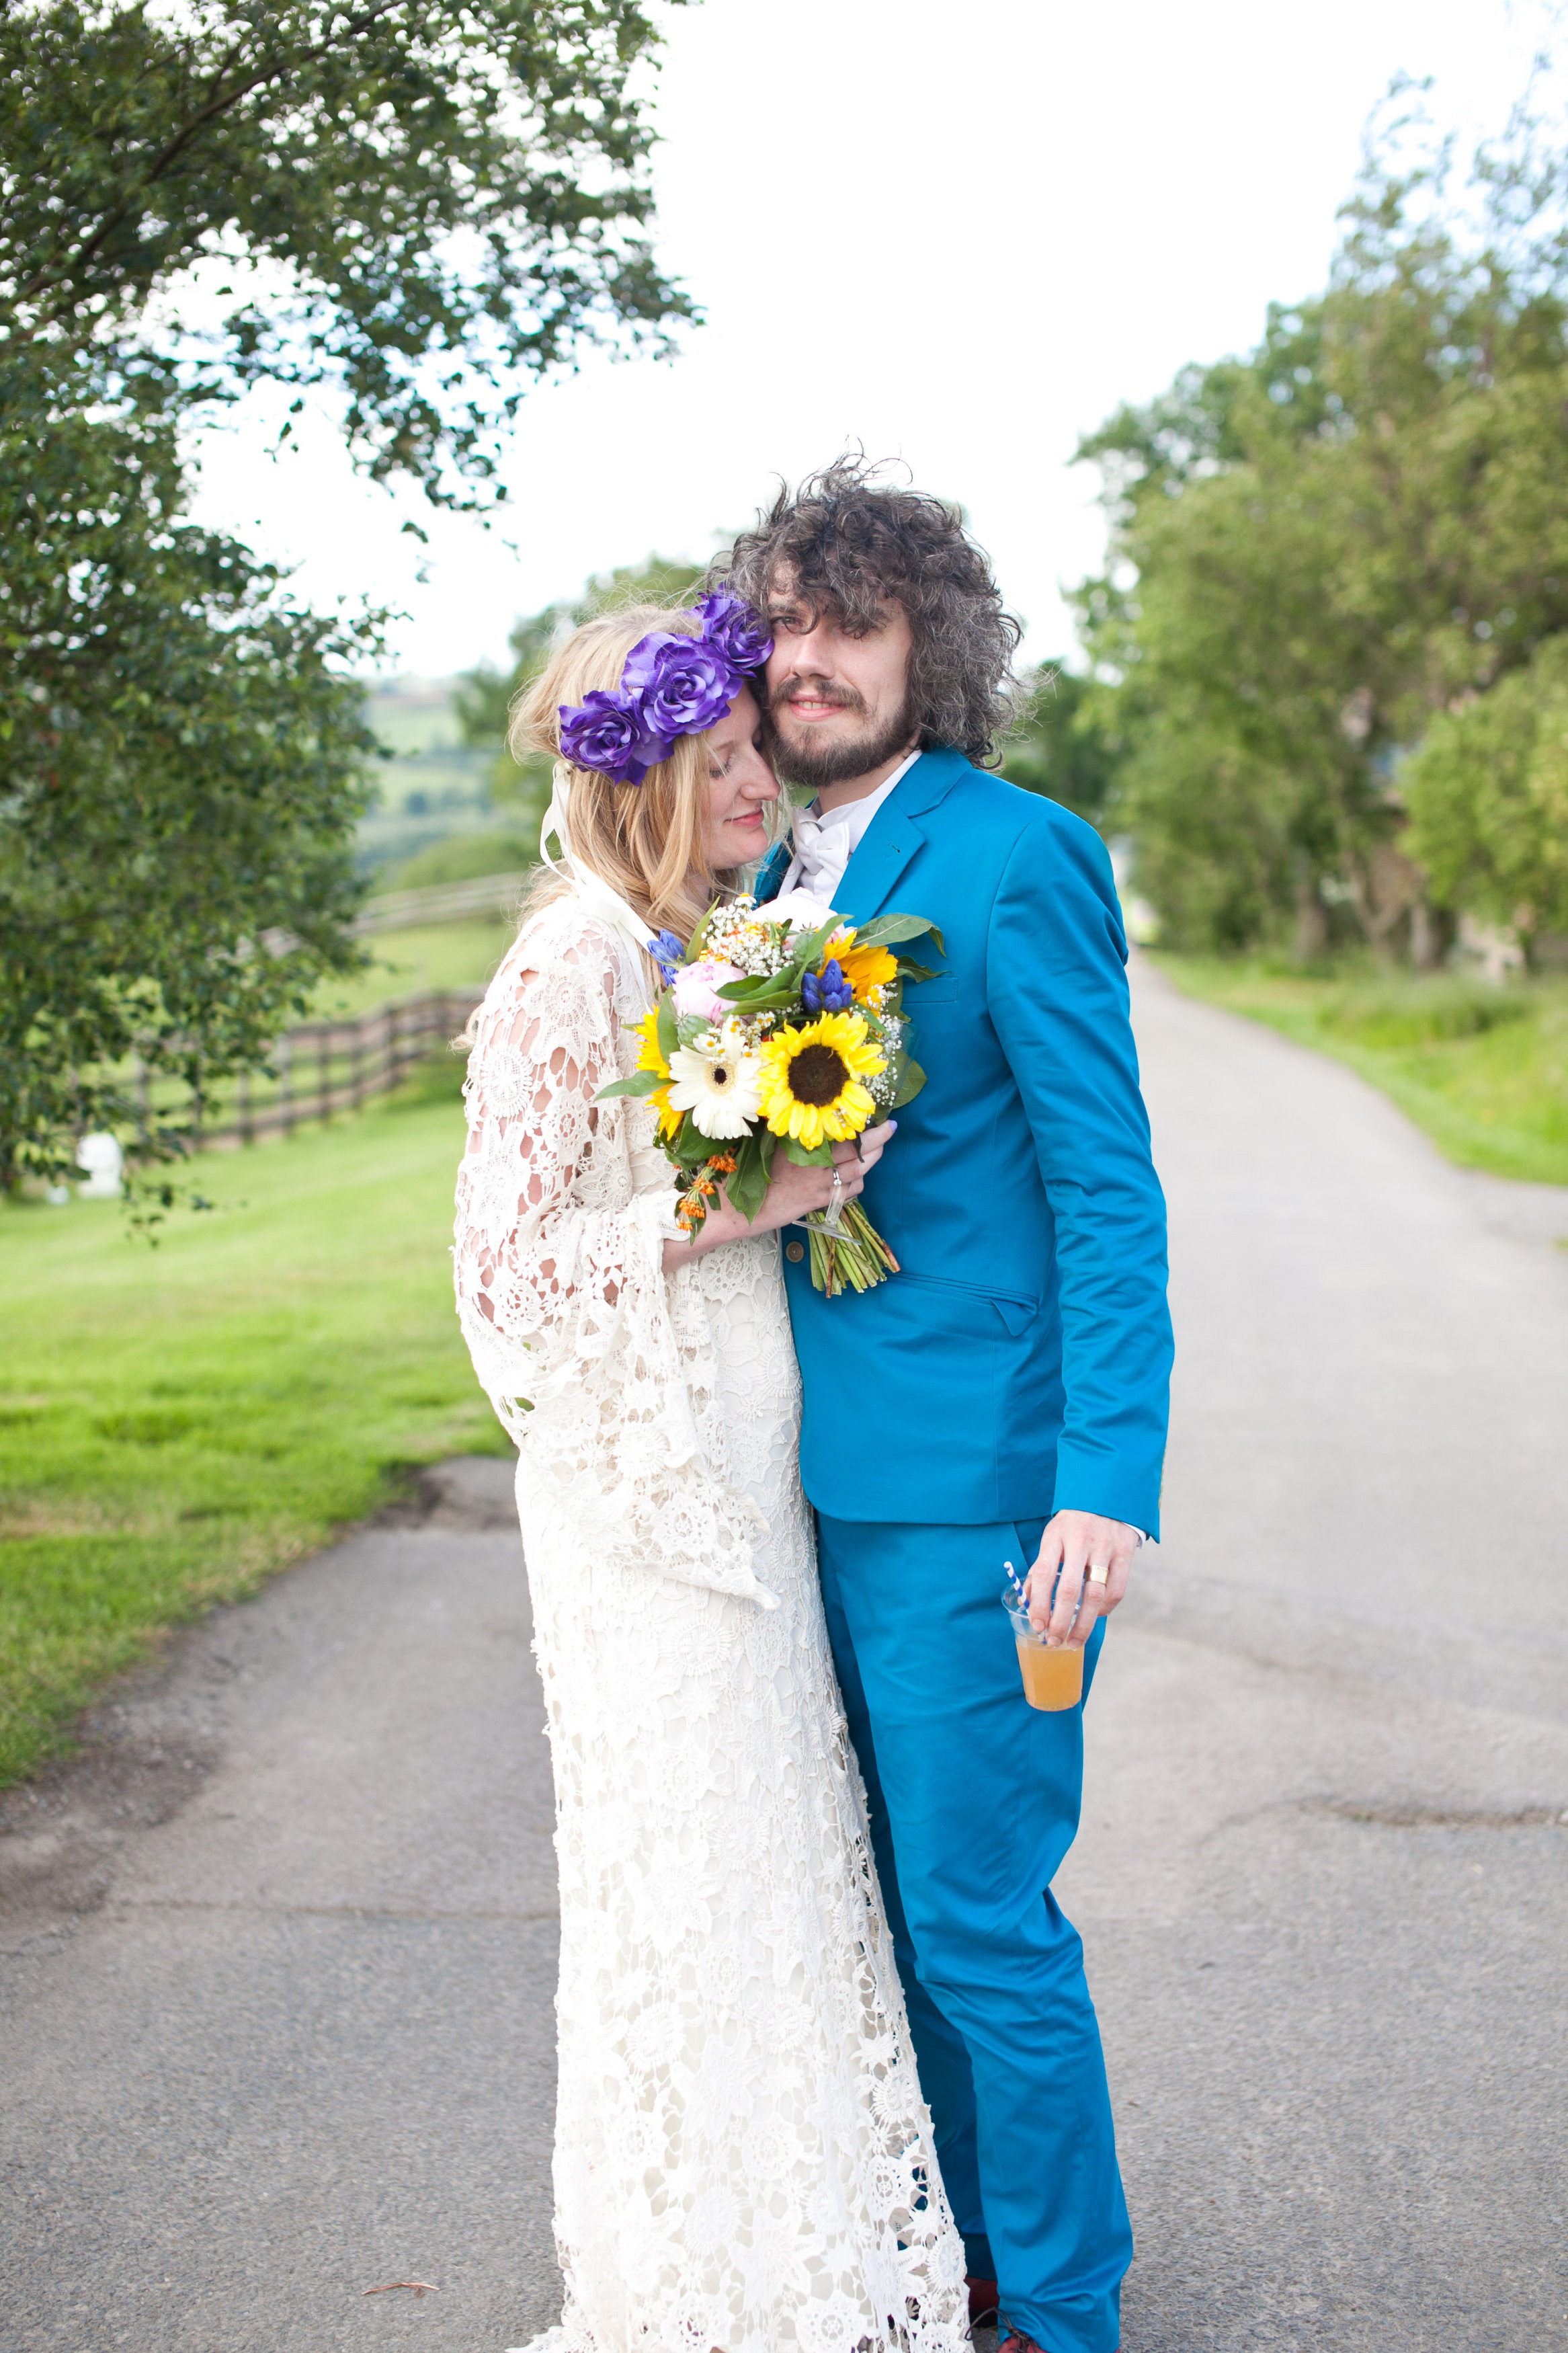 A Hippie Inspired Wedding In London